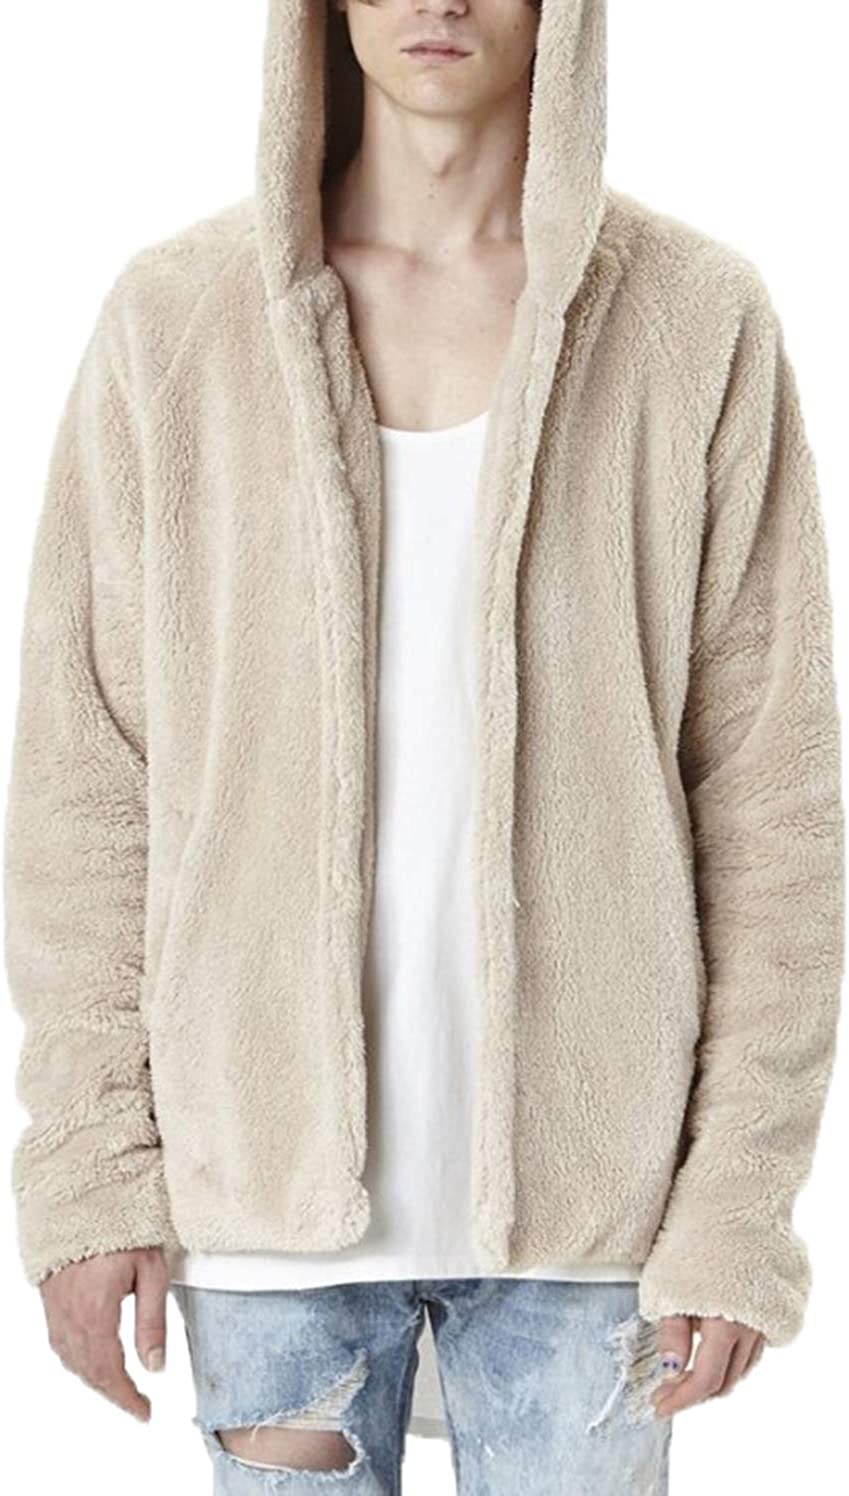 Asrlet Mens Warm Fluffy Solid Color Long Sleeve Loose Casual Hooded Coat Jacket